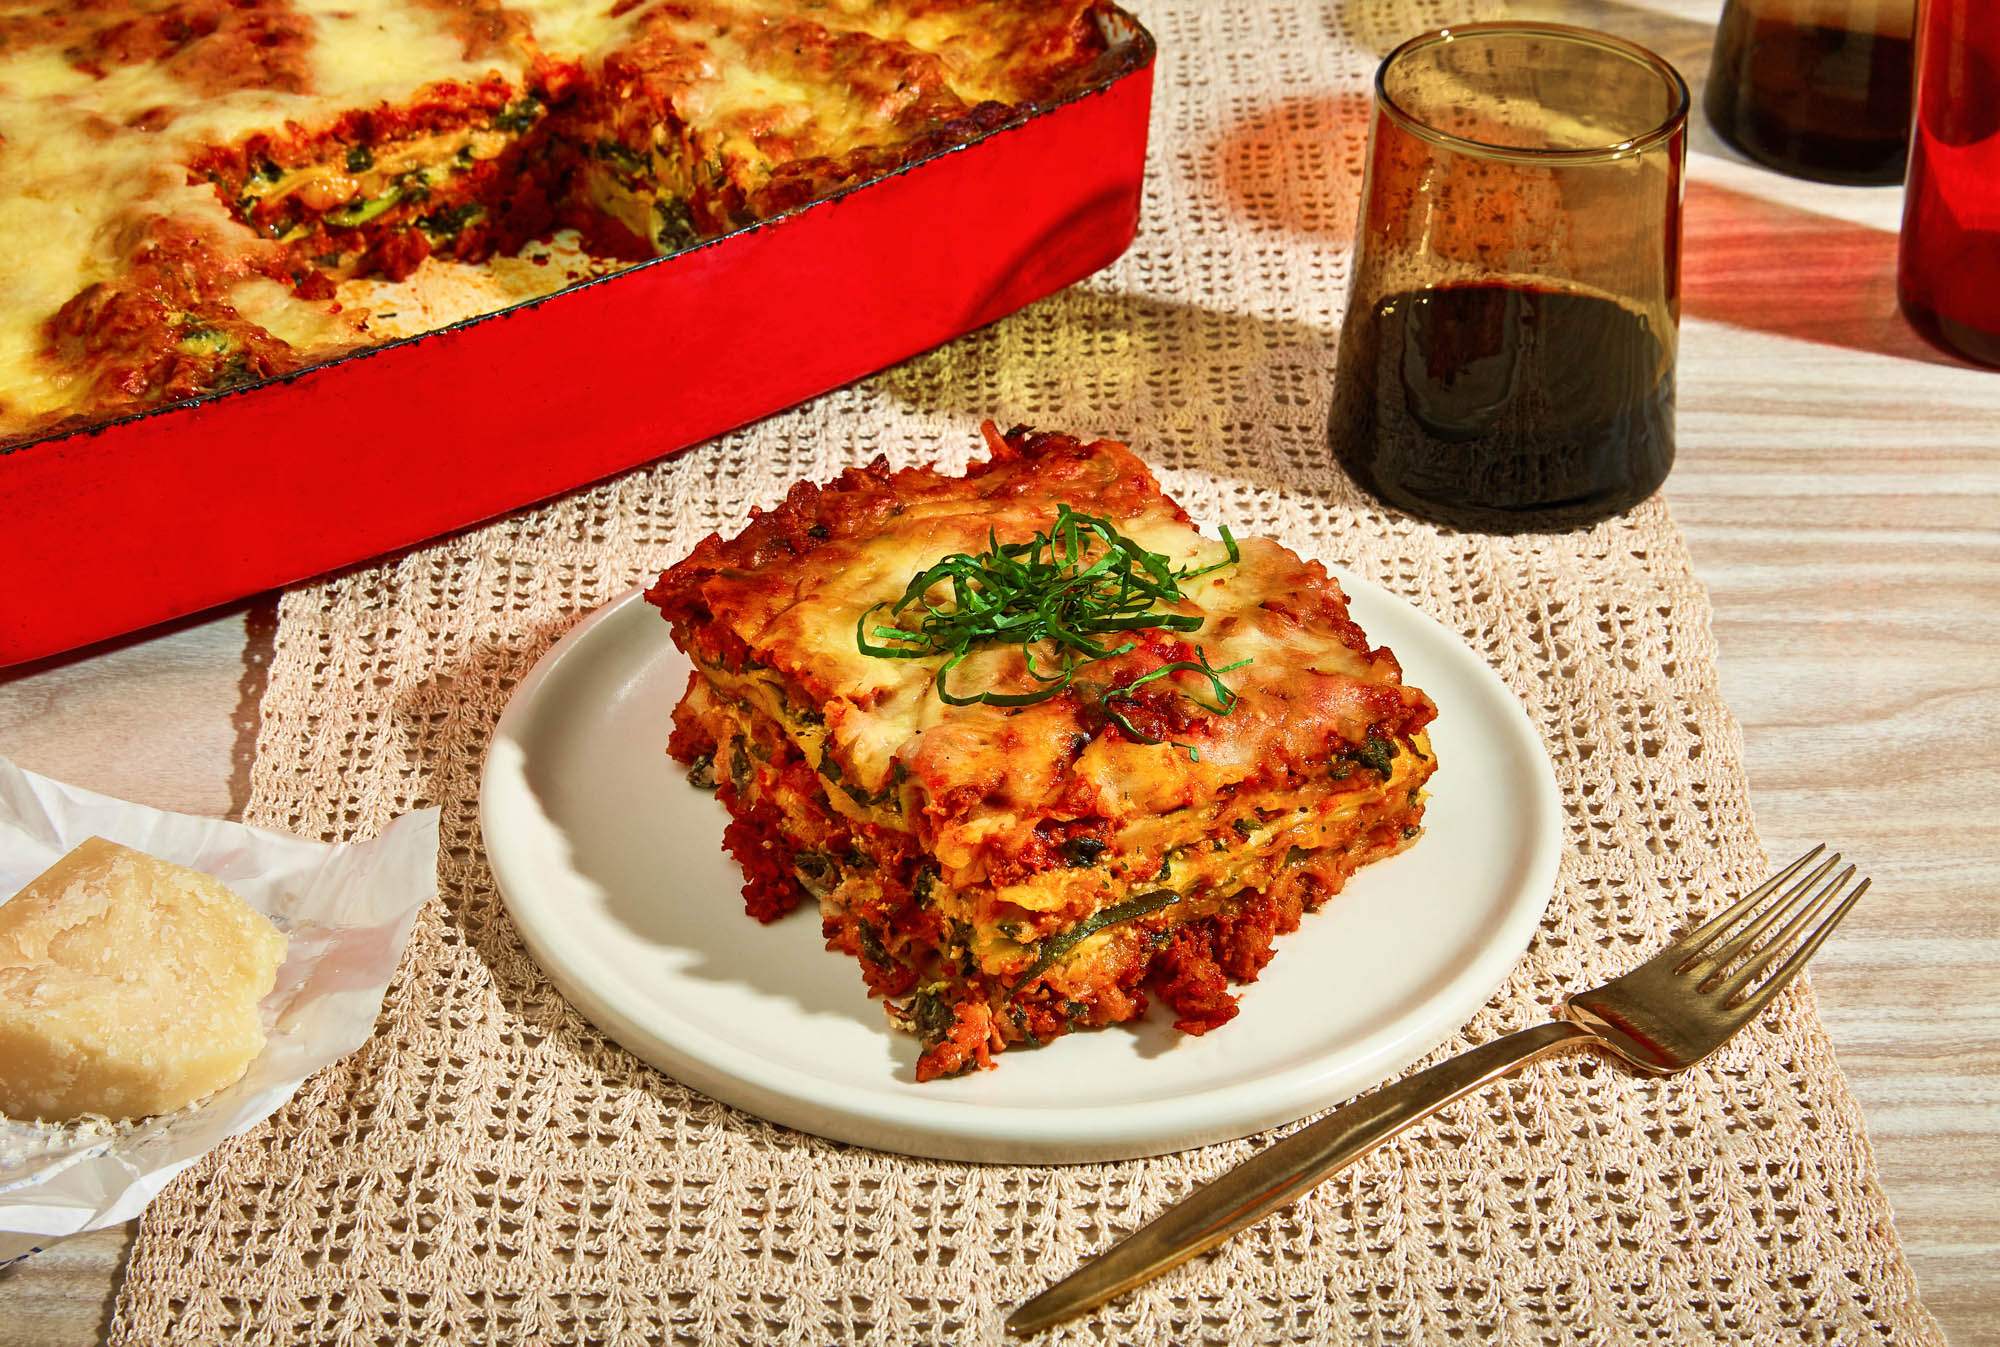 Lasagna Bolognese with Plant-Based Meat